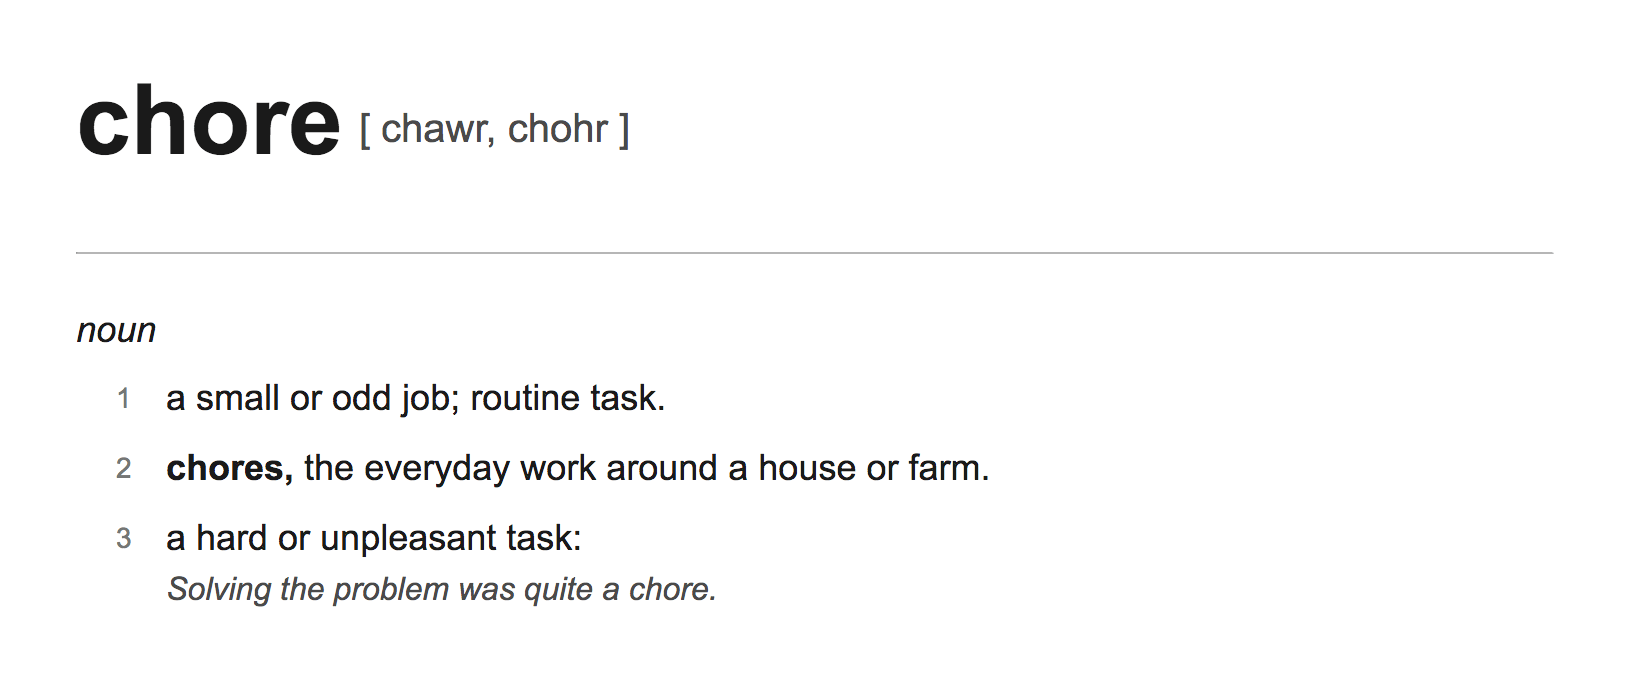 written description showing the definition of the word chore